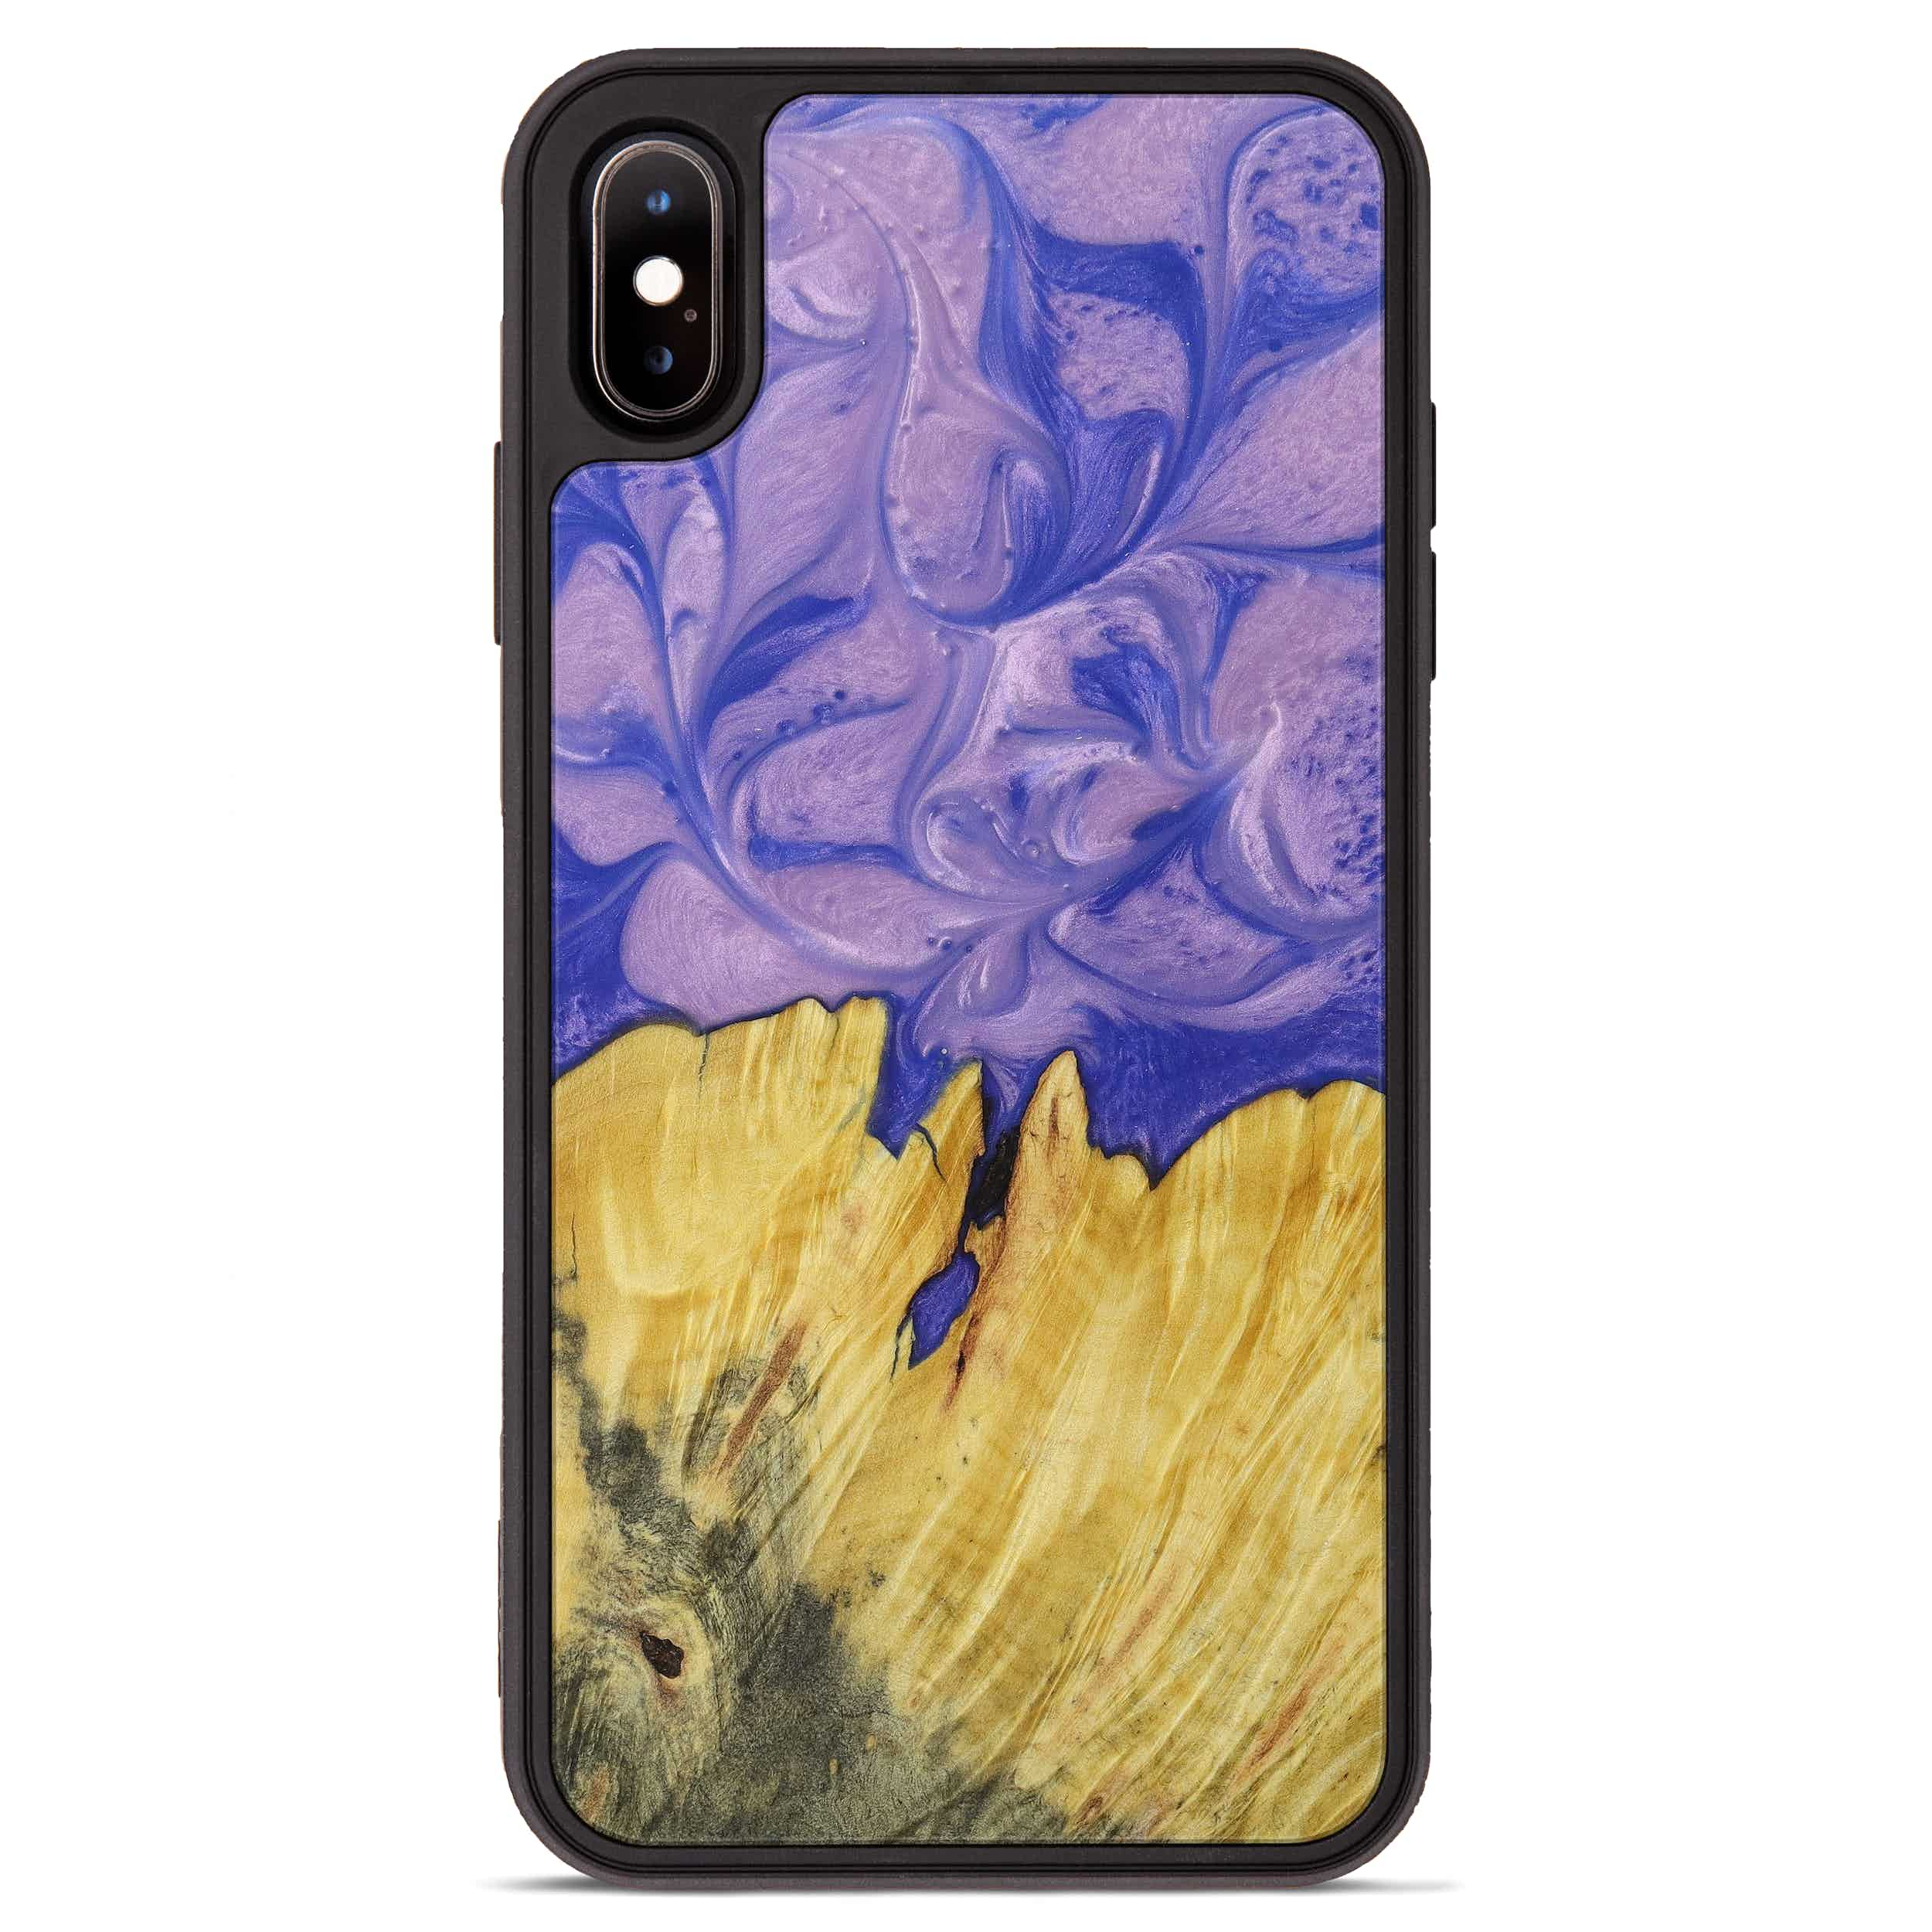 iPhone Xs Max Wood+Resin Phone Case - Luise (Purple, 395916)